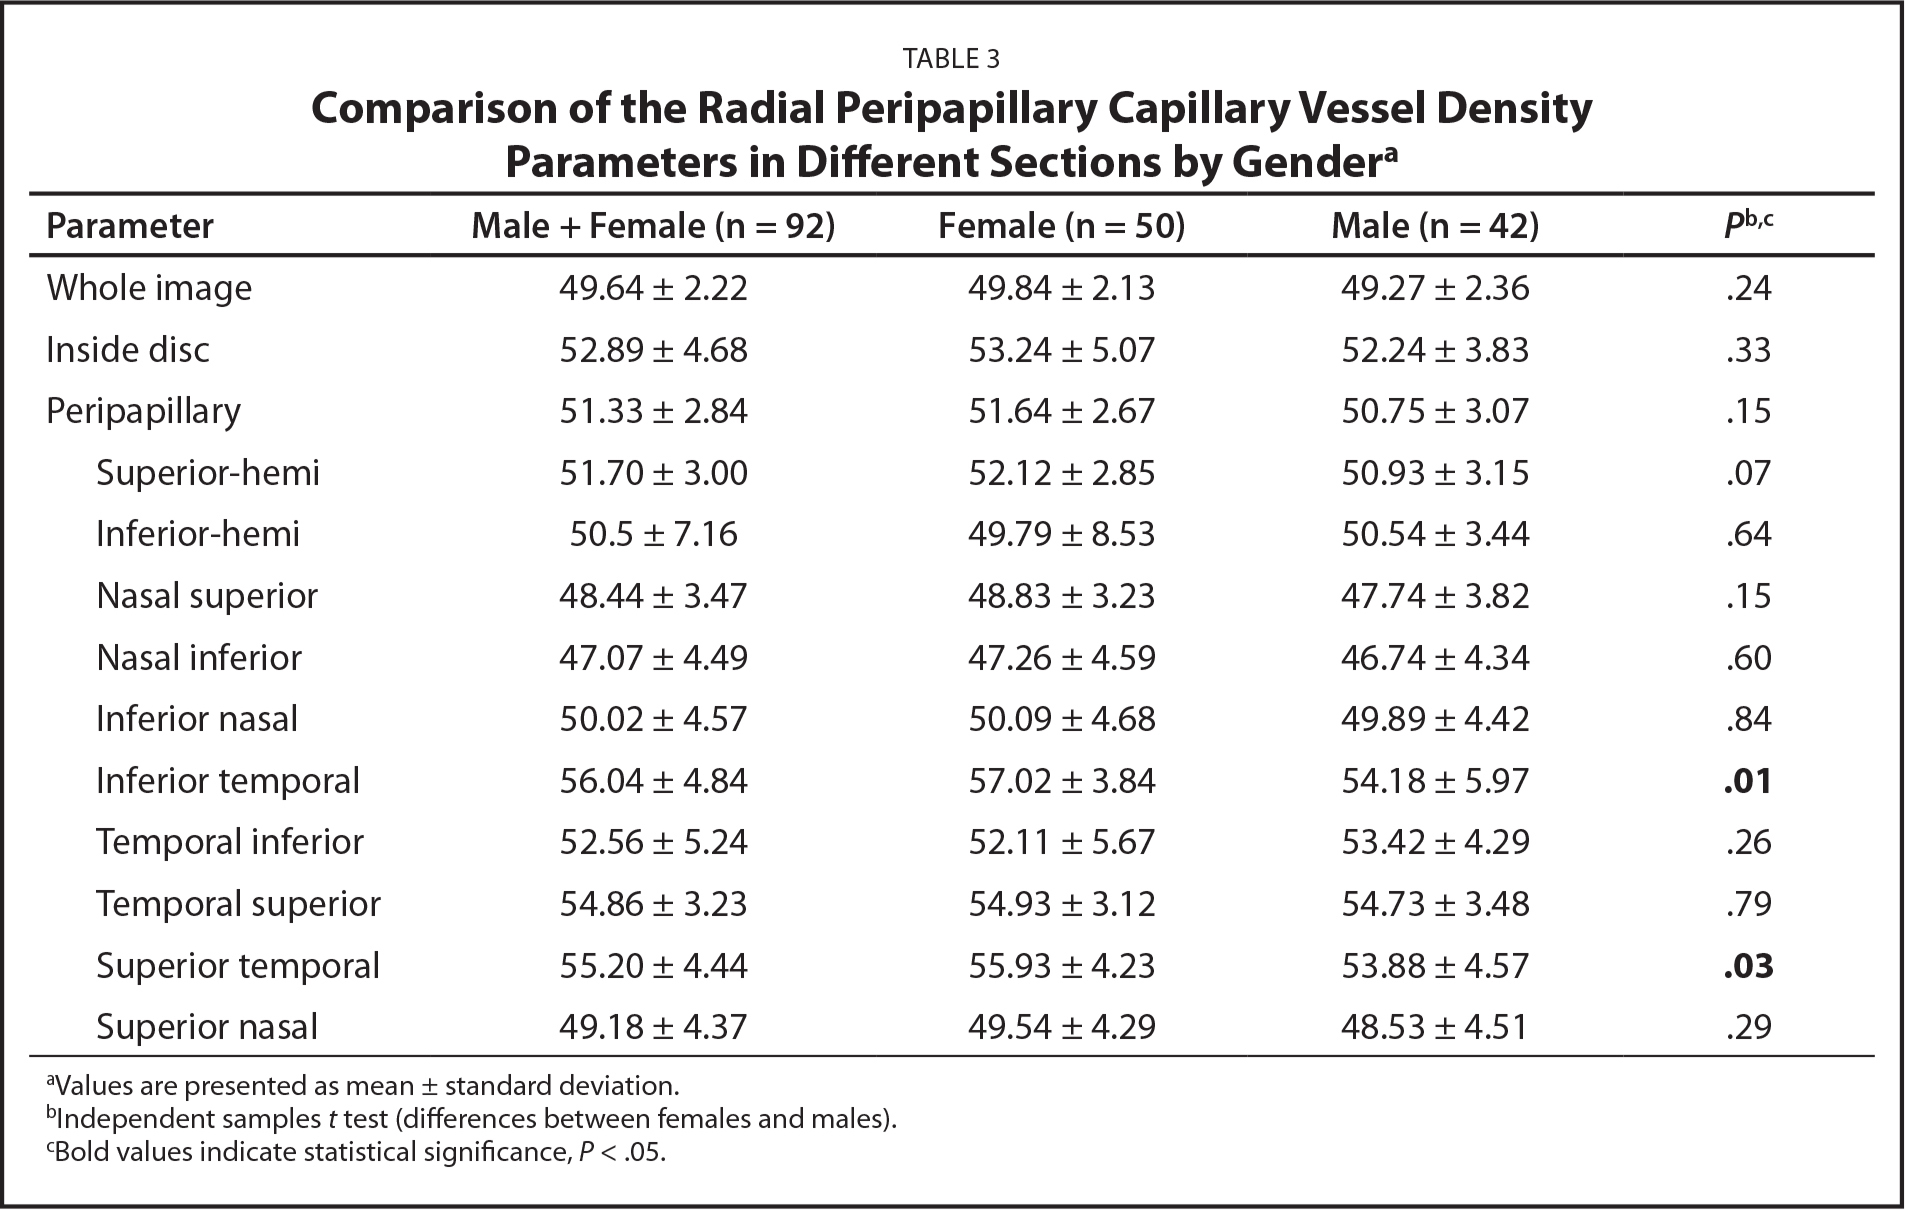 Comparison of the Radial Peripapillary Capillary Vessel Density Parameters in Different Sections by Gendera